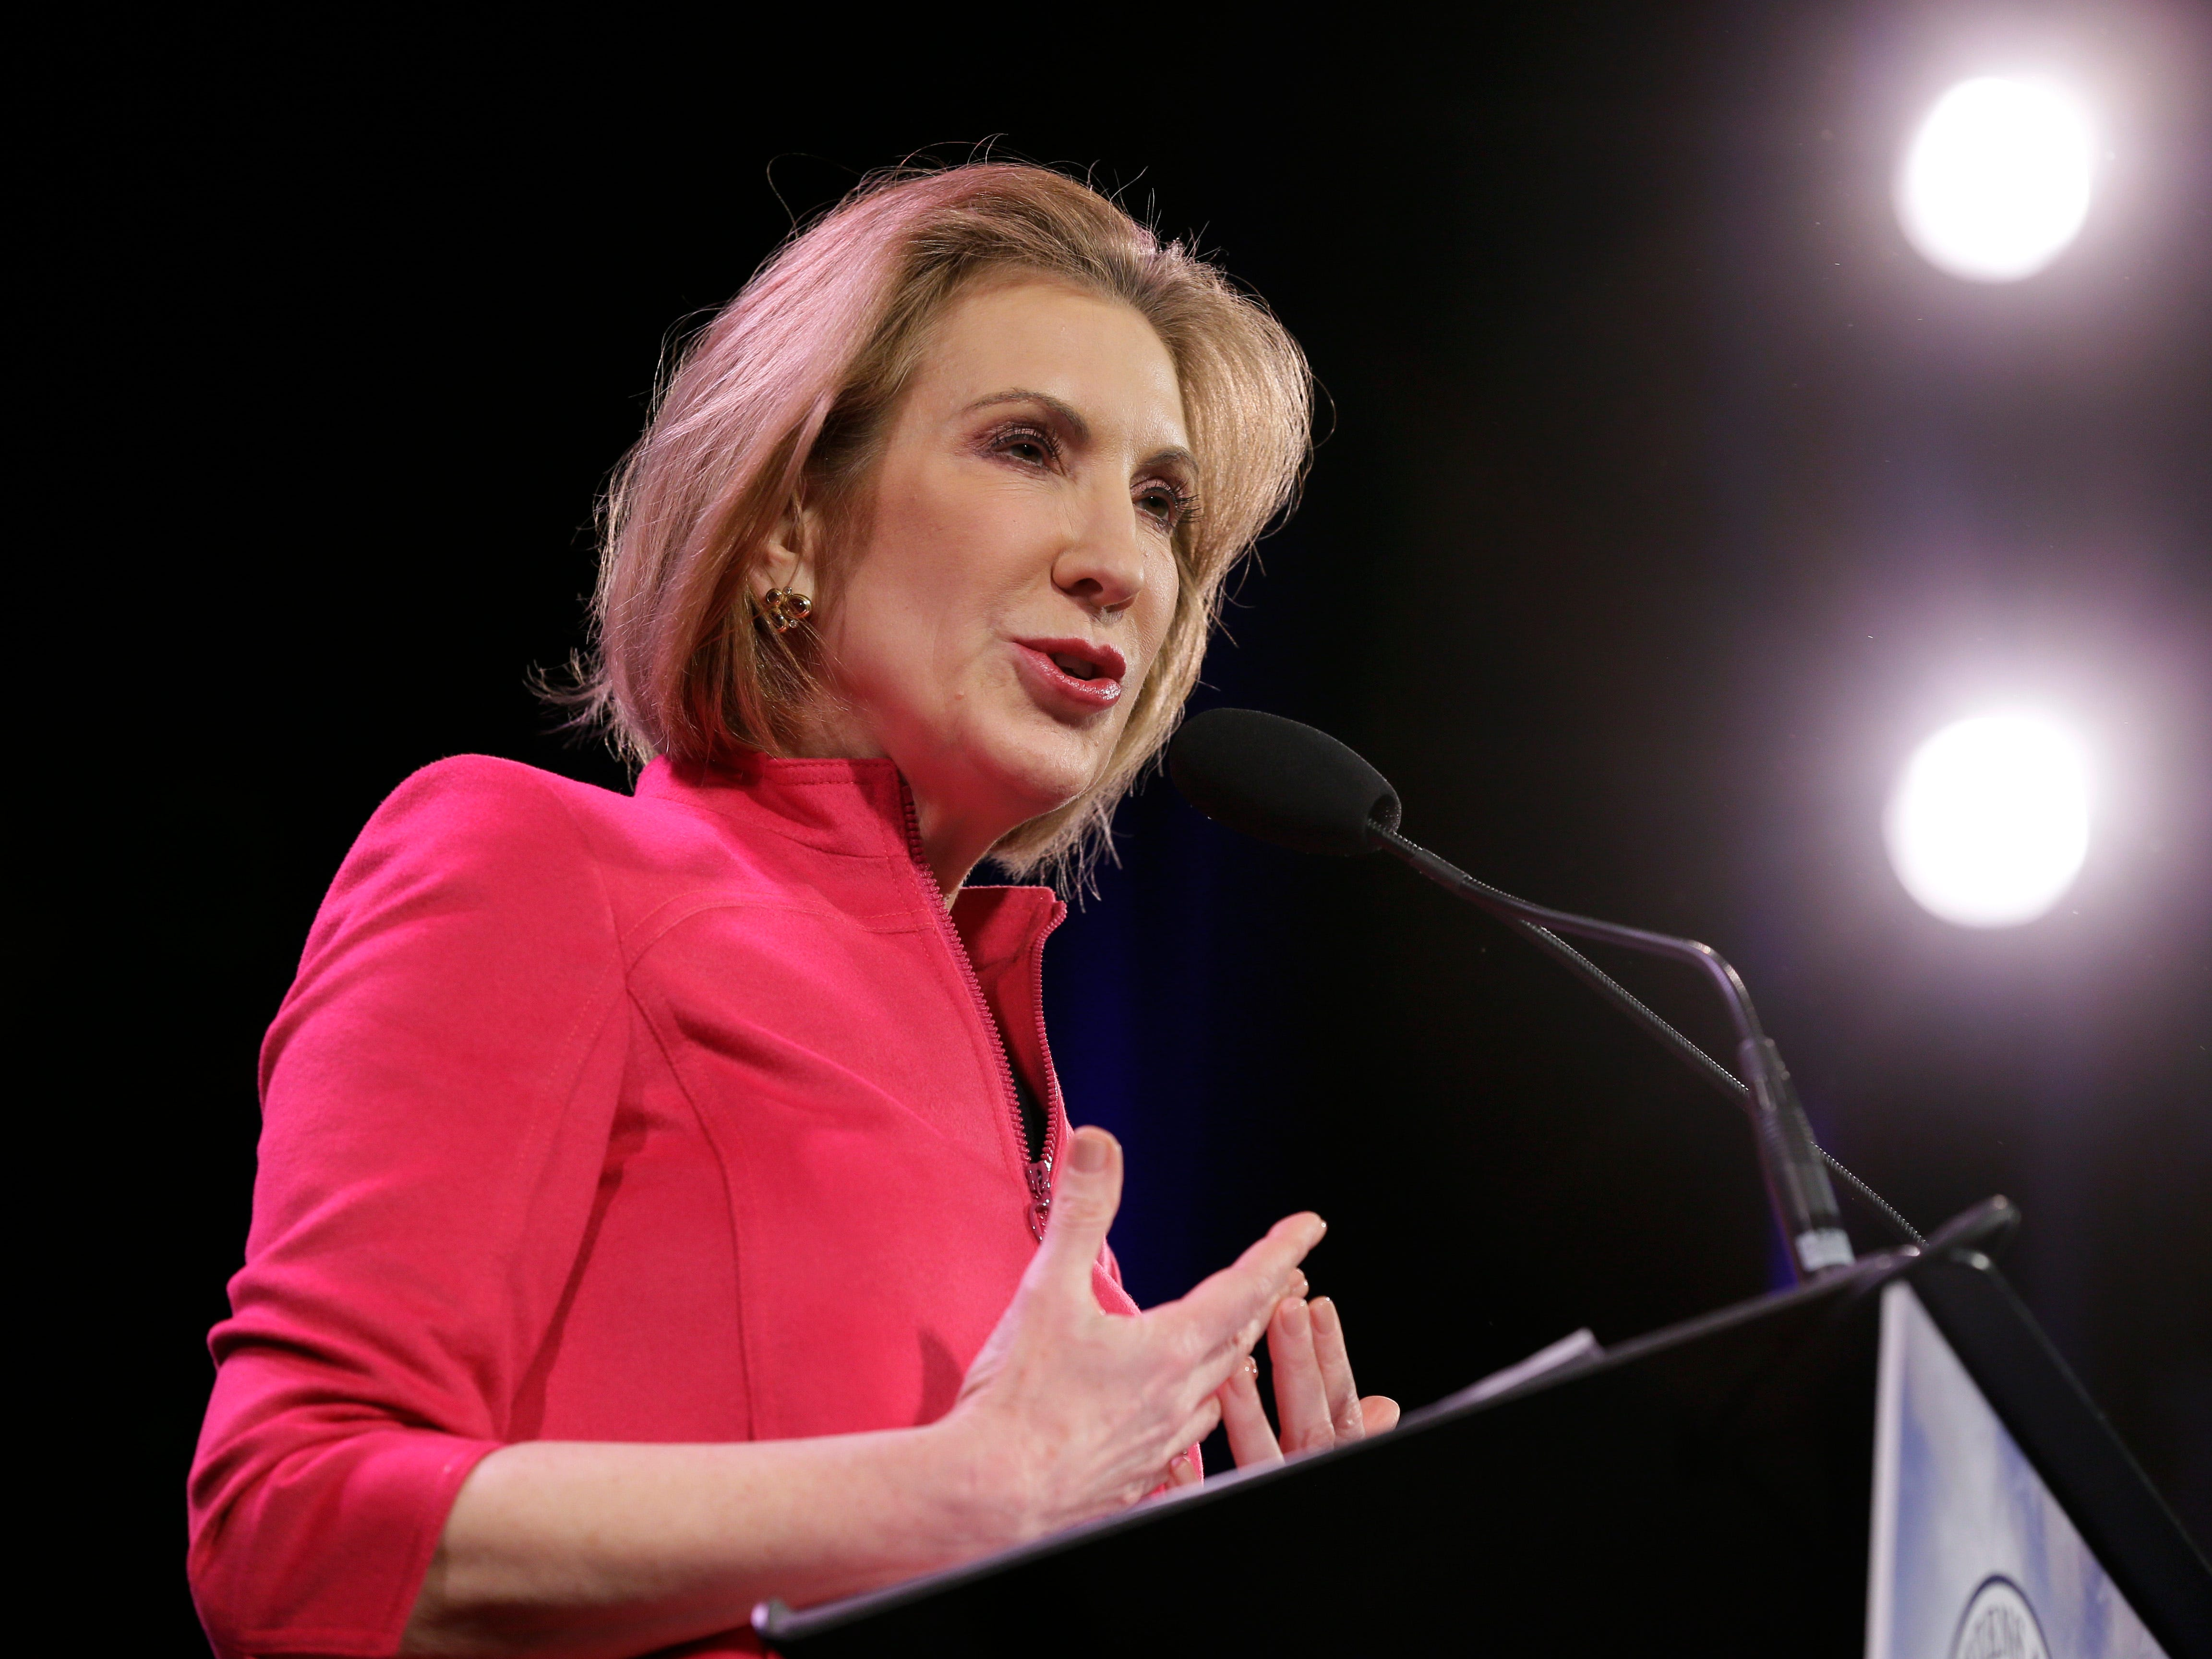 Carly Fiorina was ousted as CEO of Hewlett-Packard after nearly six years at the helm.